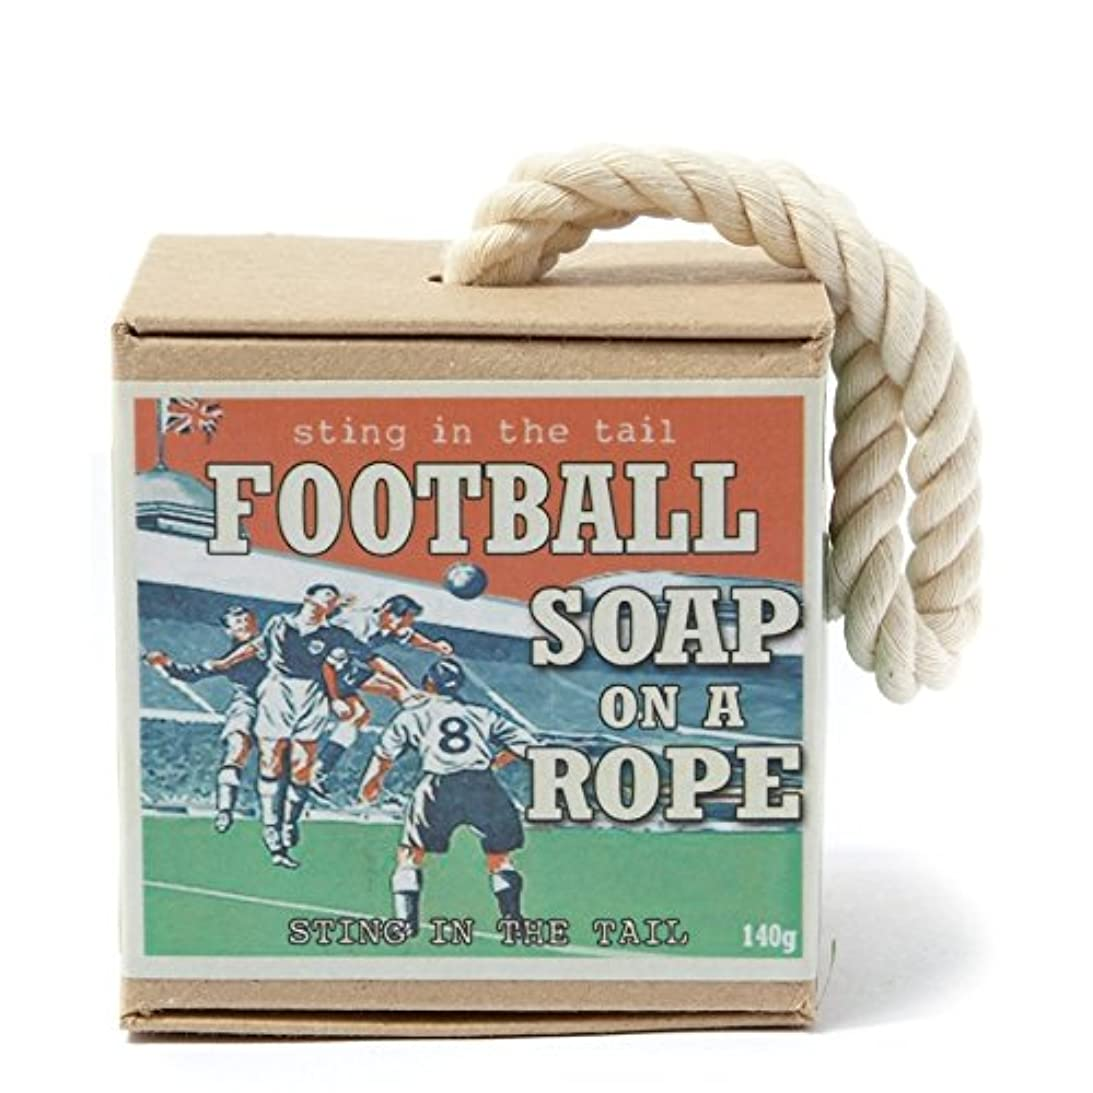 Sting In The Tail Football on a Rope Soap (Pack of 6) - ロープ石鹸のテールサッカーで刺します x6 [並行輸入品]